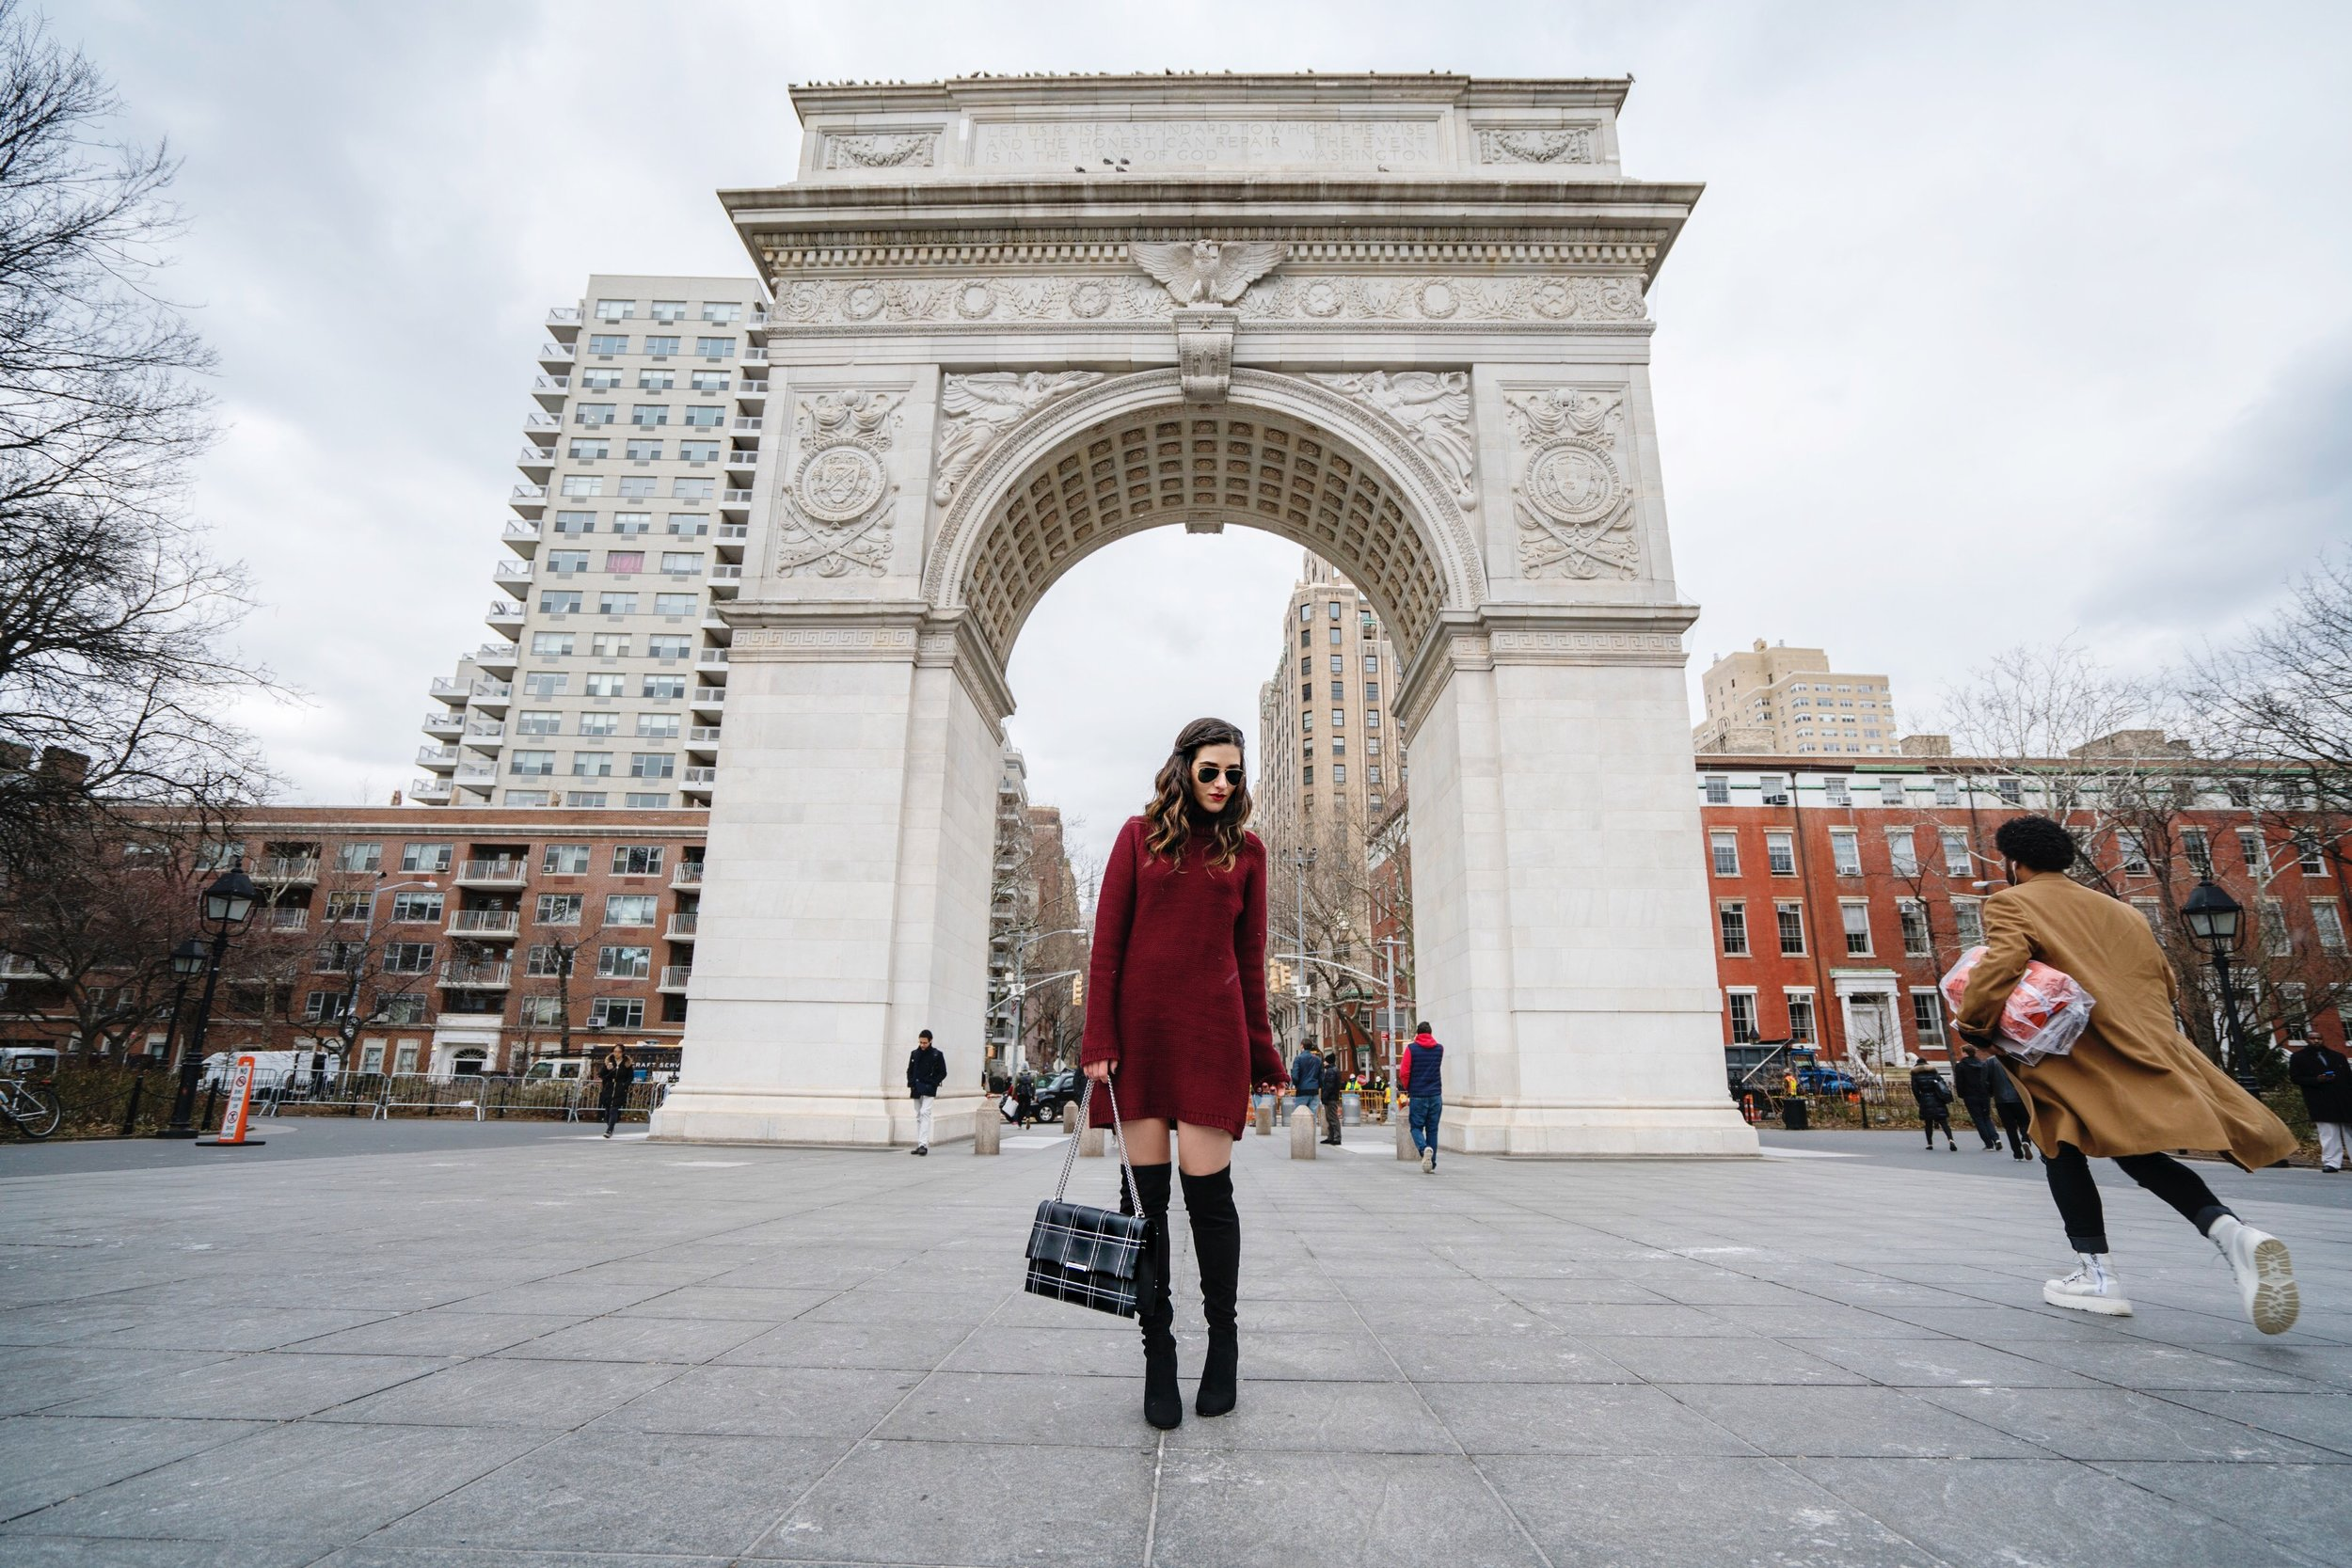 Maroon Sweater Dress OTK Boots My Biggest Blogging Mistake Esther Santer Fashion Blog NYC Street Style Blogger Outfit OOTD Trendy Red Girl Women Sunglasses RayBan Aviators Wearing Shopping Zara Casual Inspo Photoshoot New York City Grid Bag Purse Hair.JPG